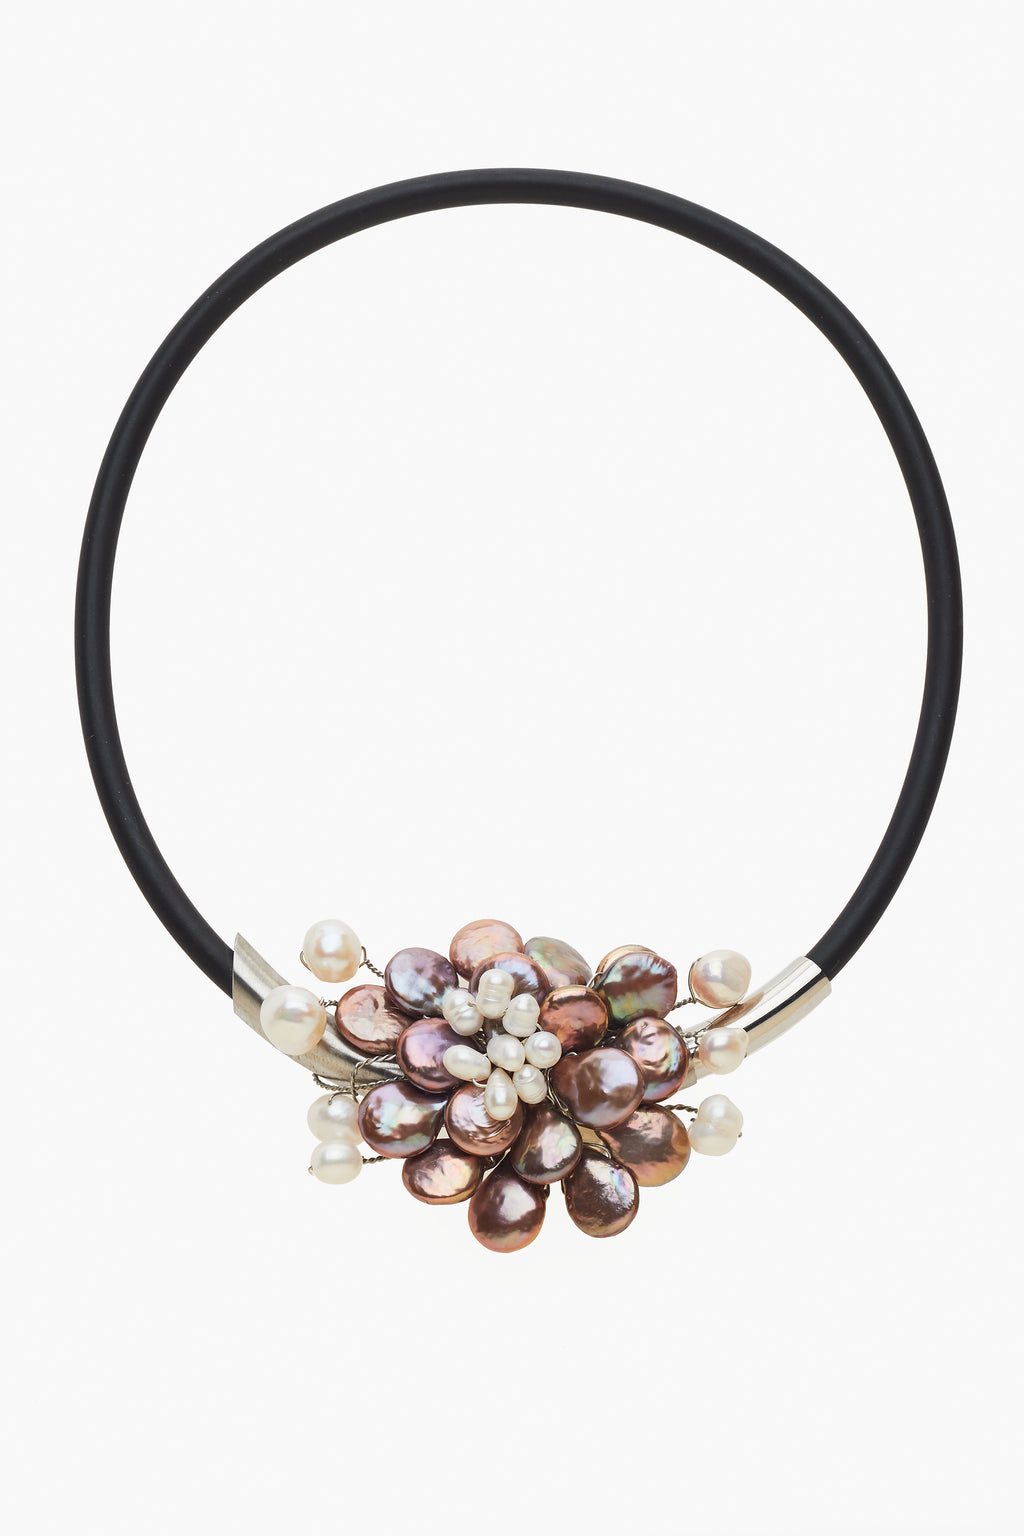 Bronze Coin & White Freshwater Pearls on a Black Neck Ring